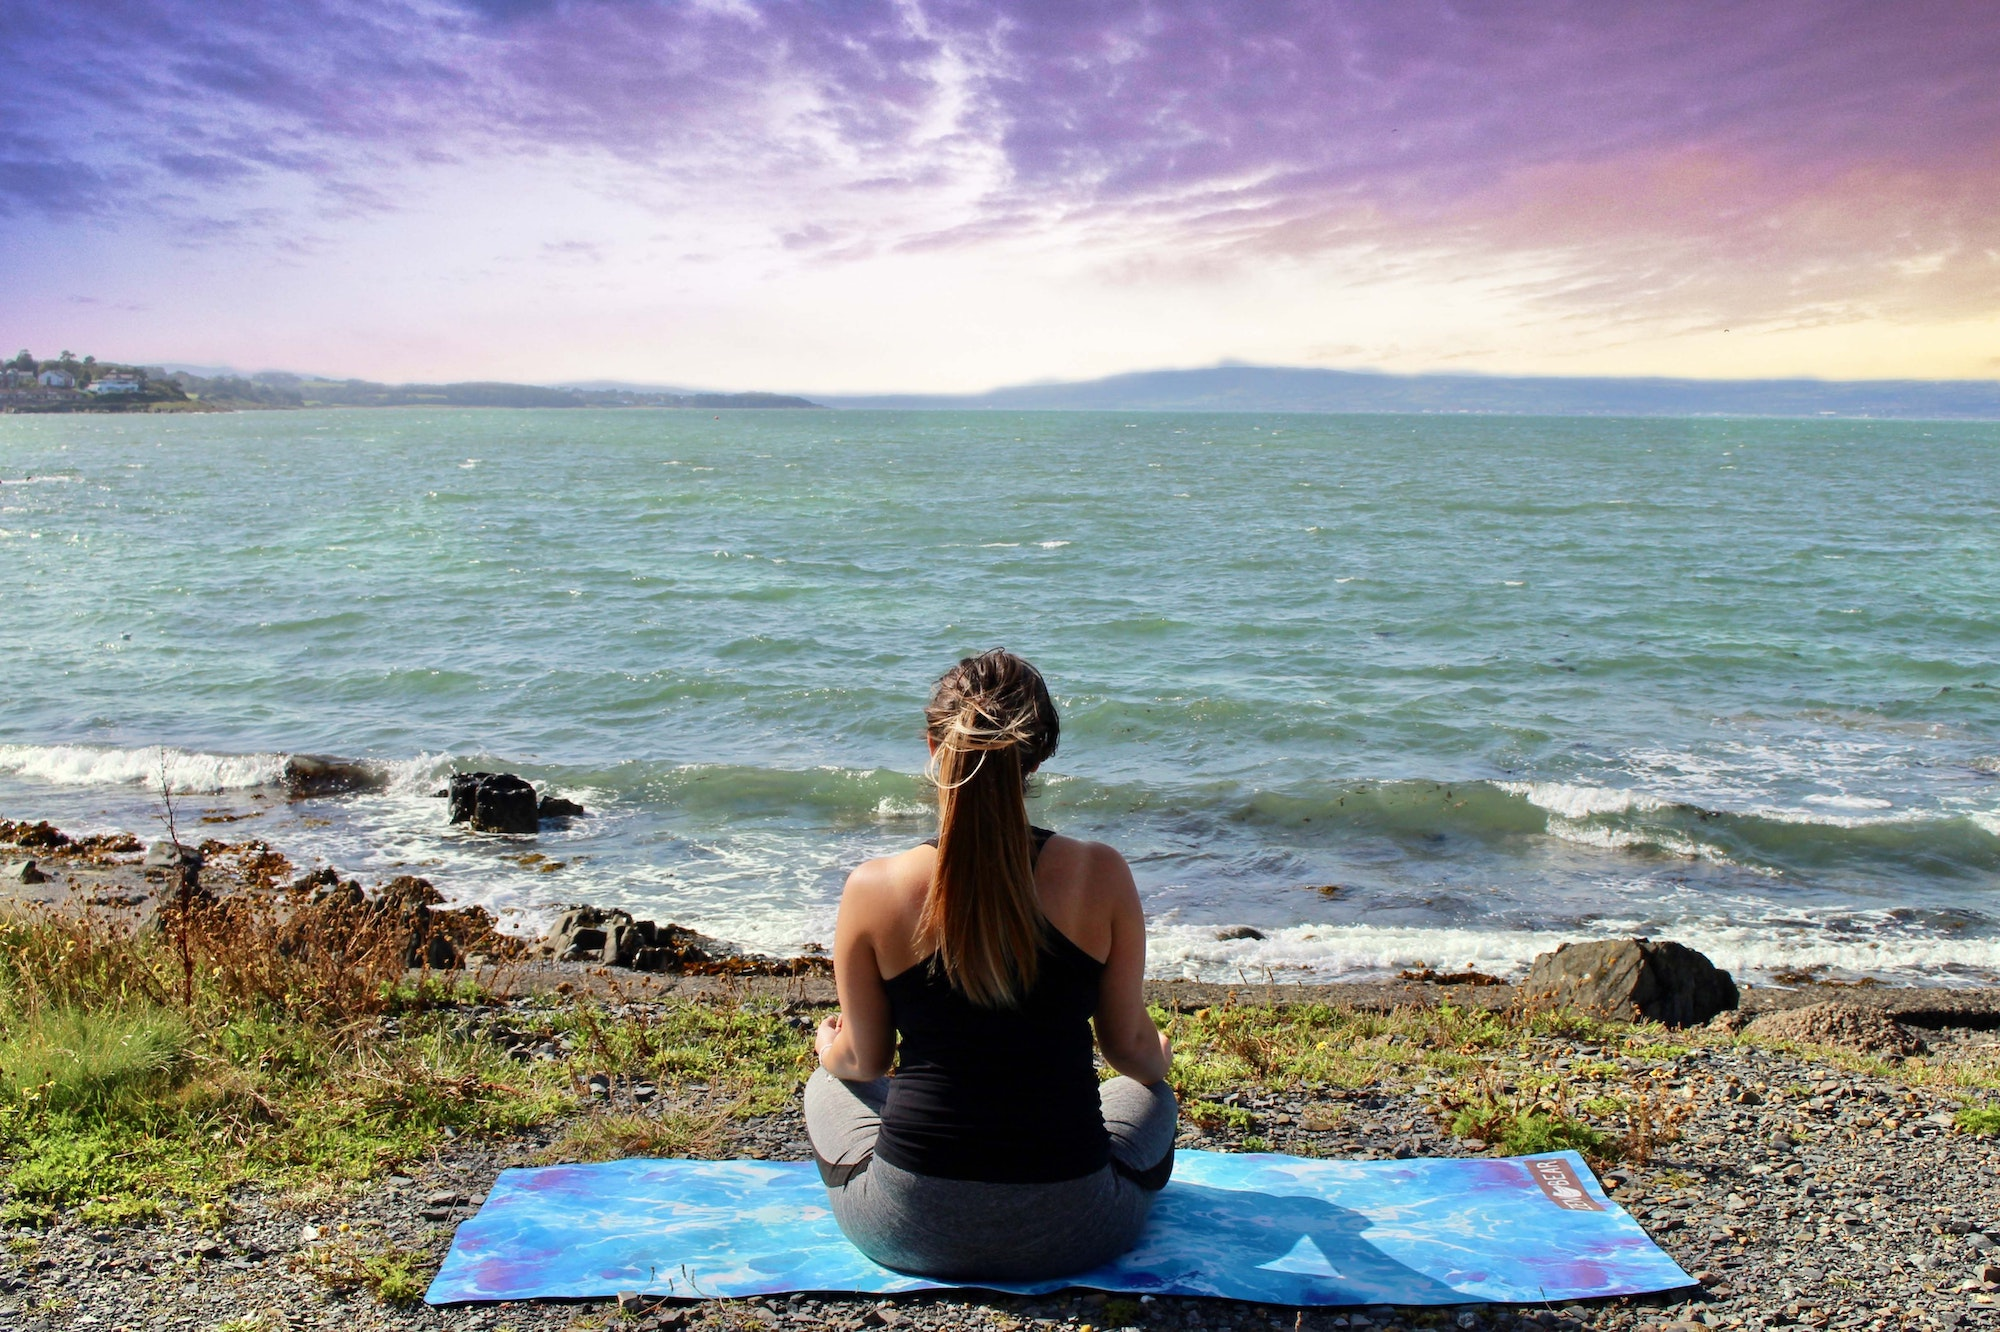 Woman sitting on a blue yoga mat looking out to sea